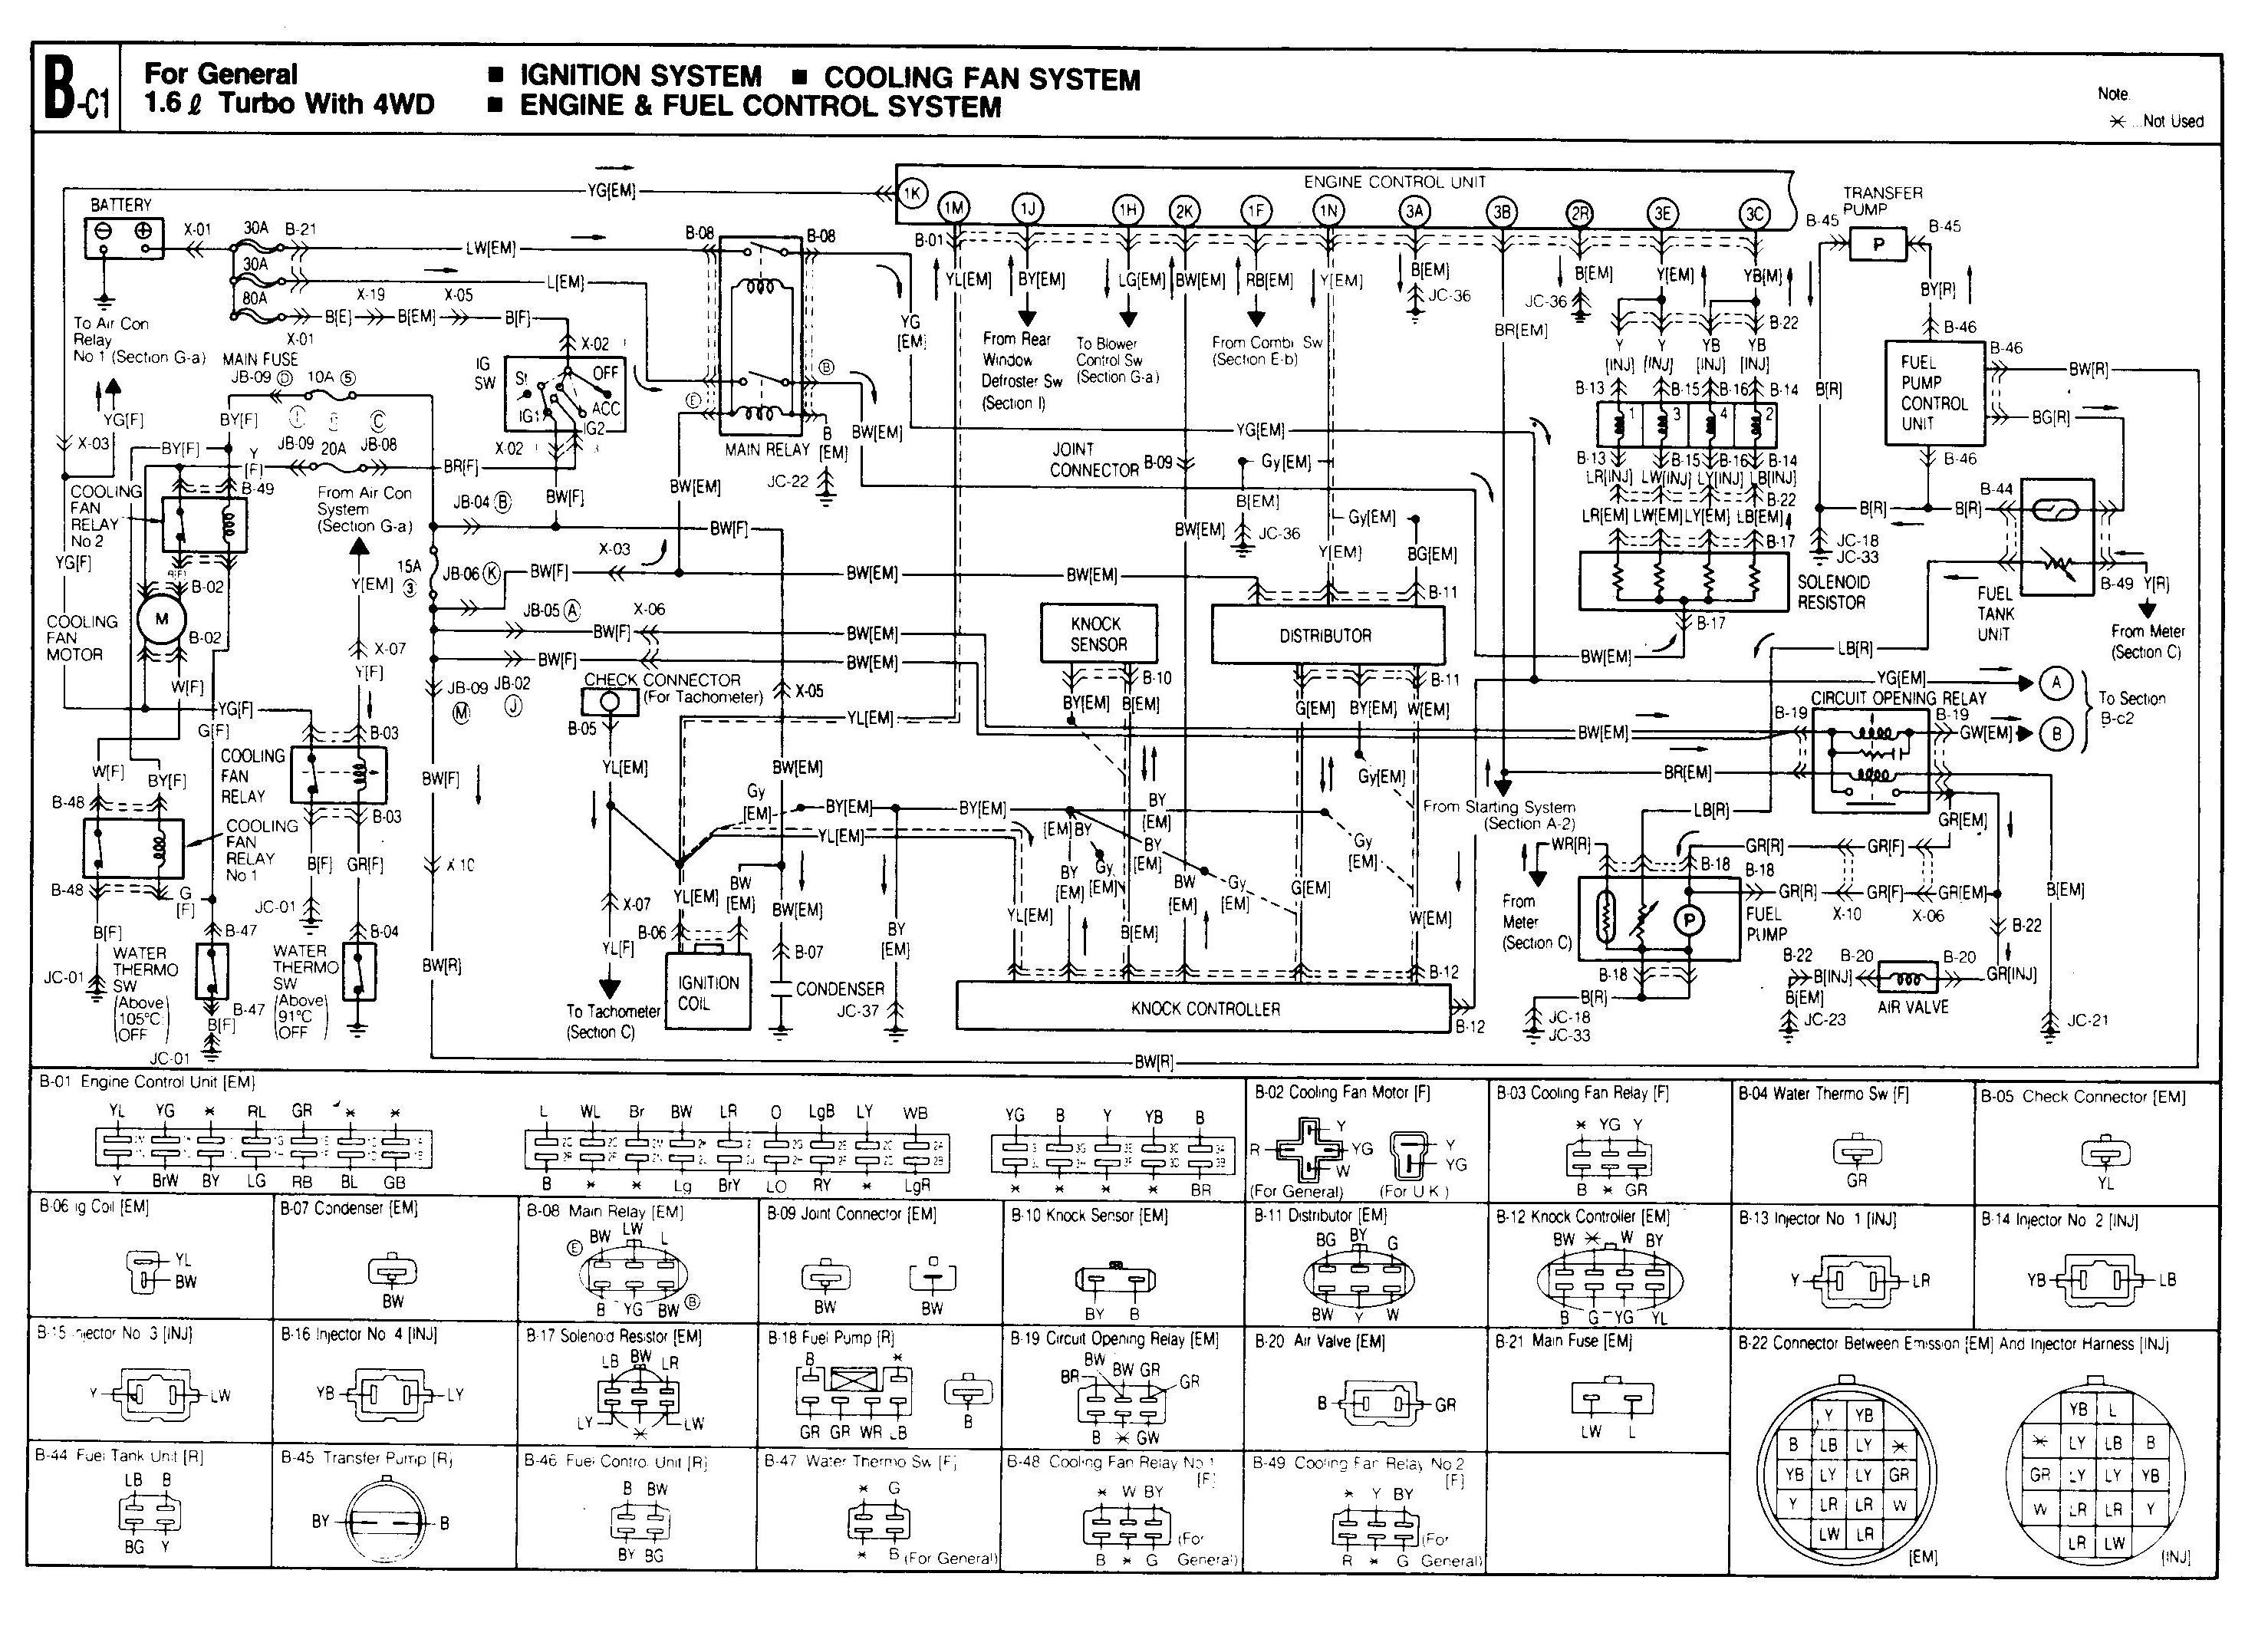 350z Engine Diagram Mazda Protege Hvac System Wiring Diagram Worksheet and Wiring Of 350z Engine Diagram Diagram Crossover Ads Wiring 336is Custom Project Wiring Diagram •